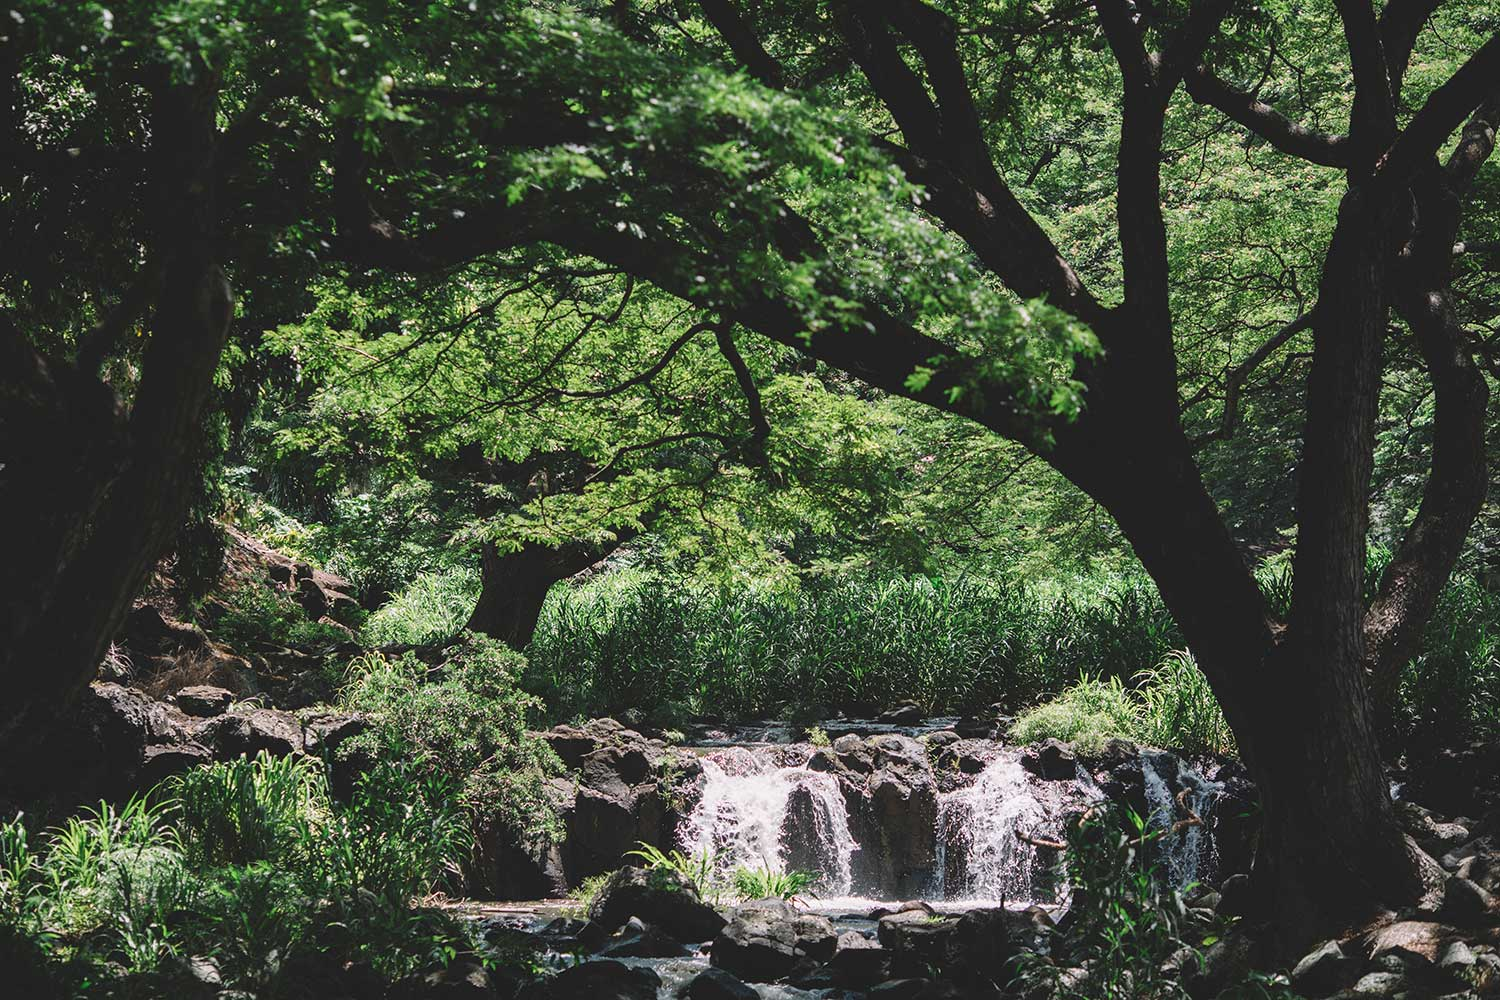 A small waterfall centered in the image with many trees surrounding it